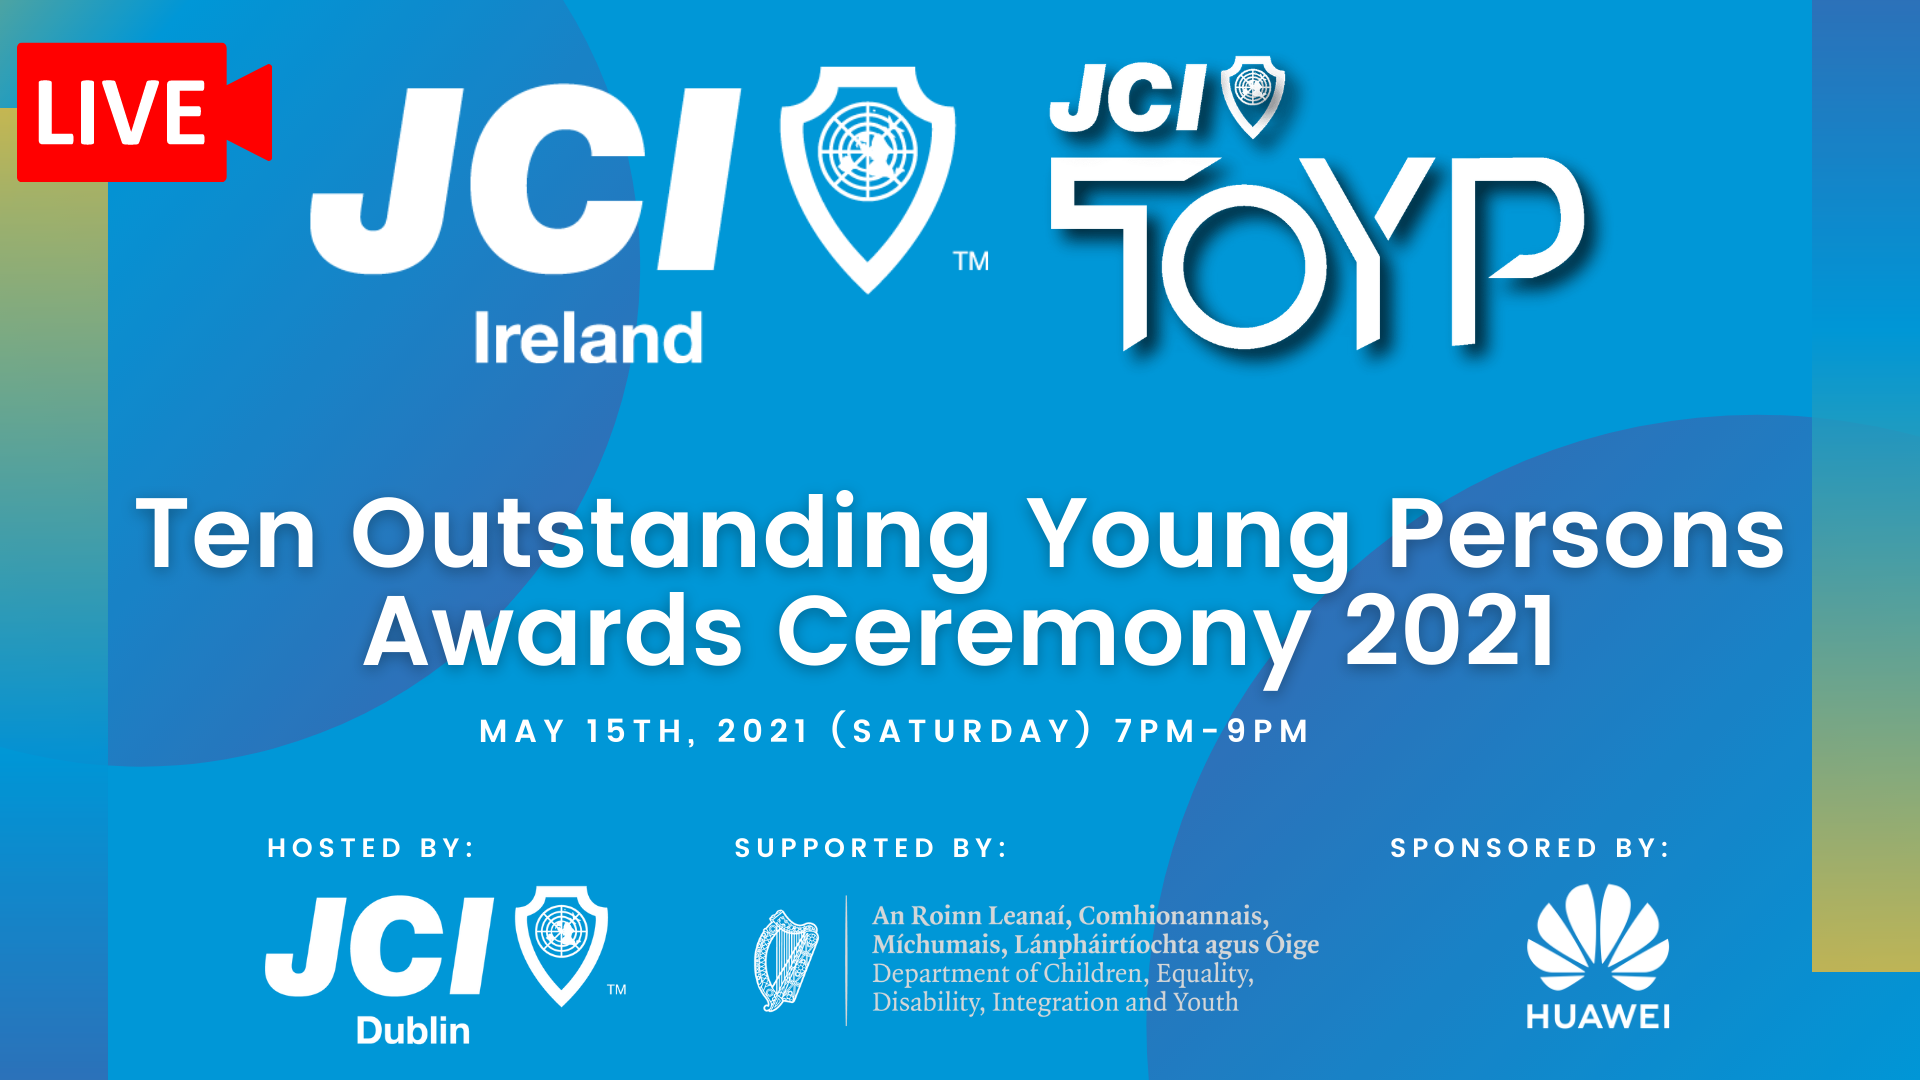 JCI Ireland Ten Outstanding Young Persons Awards Ceremony 2021